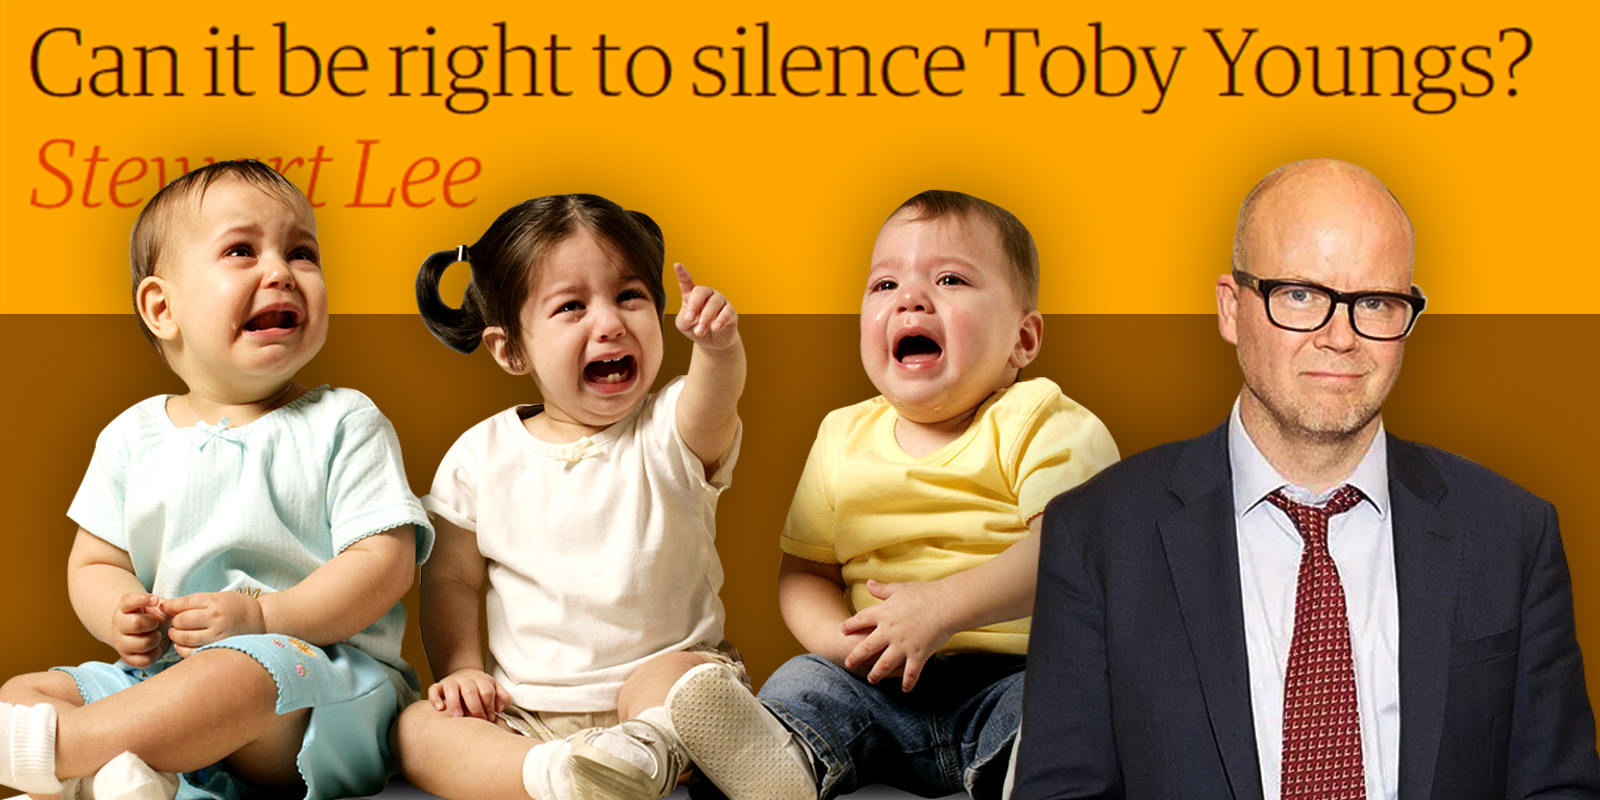 The Guardian is not a fan of Toby Young or free speech